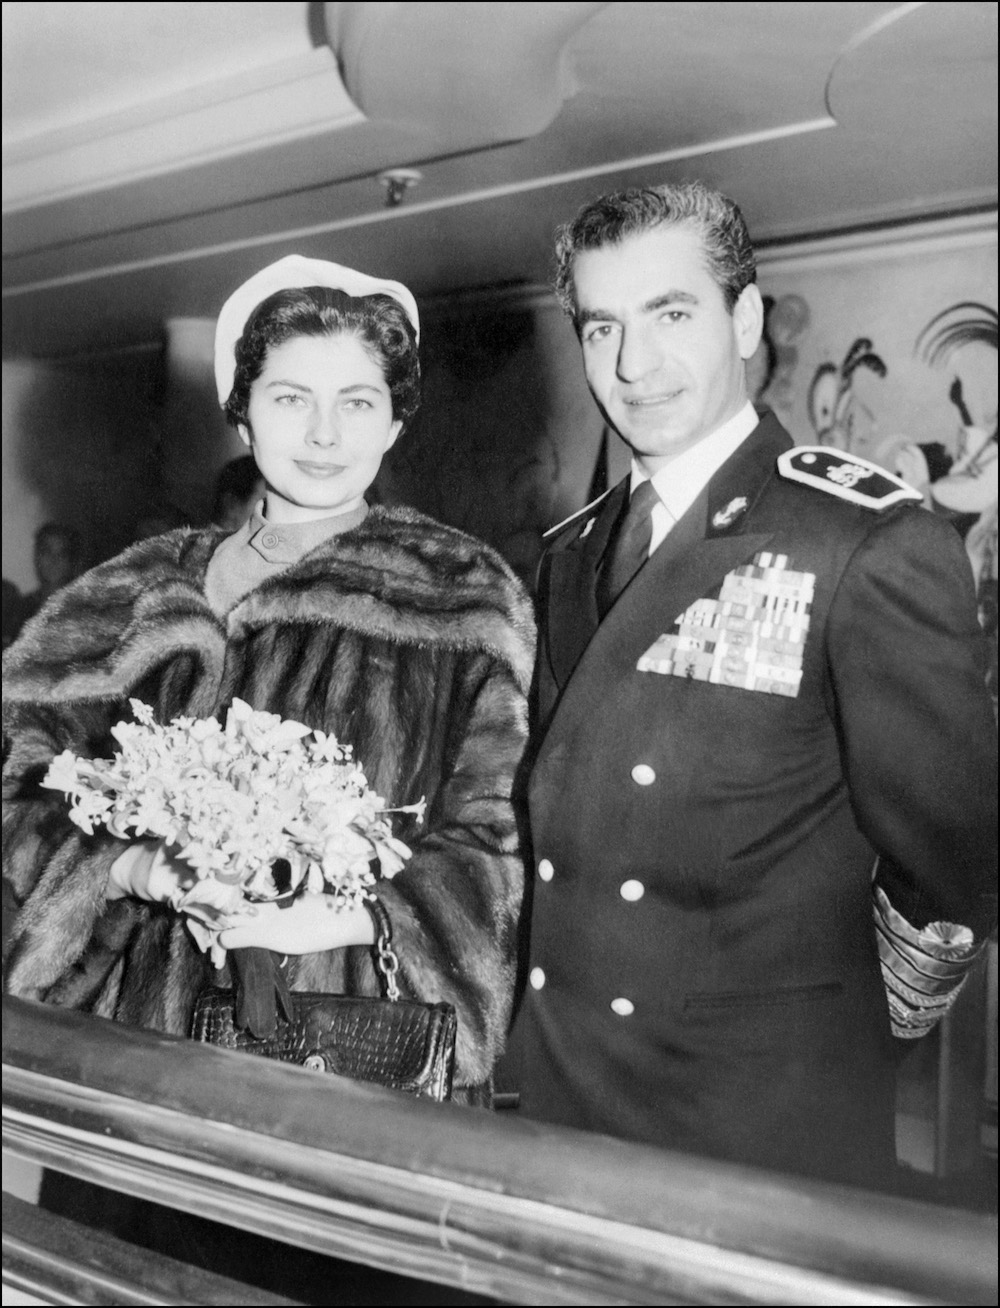 Mohammad Reza Pahlavi, the Shah of Iran, and his wife Empress Soraya pose for the media in Tehran in March 1953.